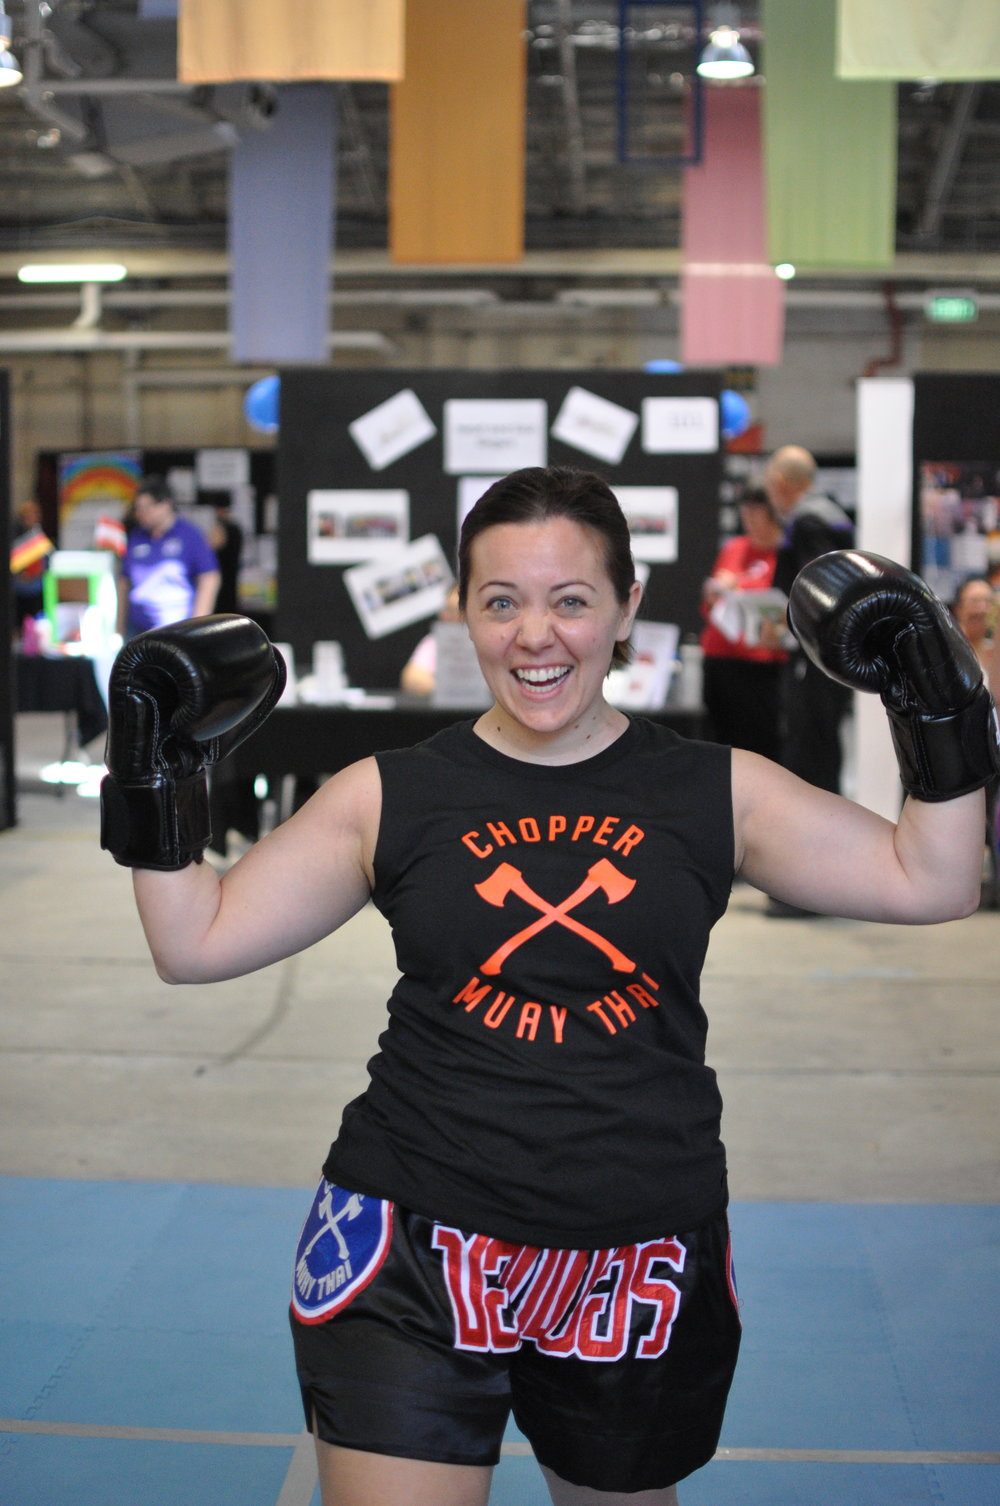 Muay+Thai+Fighter+Canberra.JPG